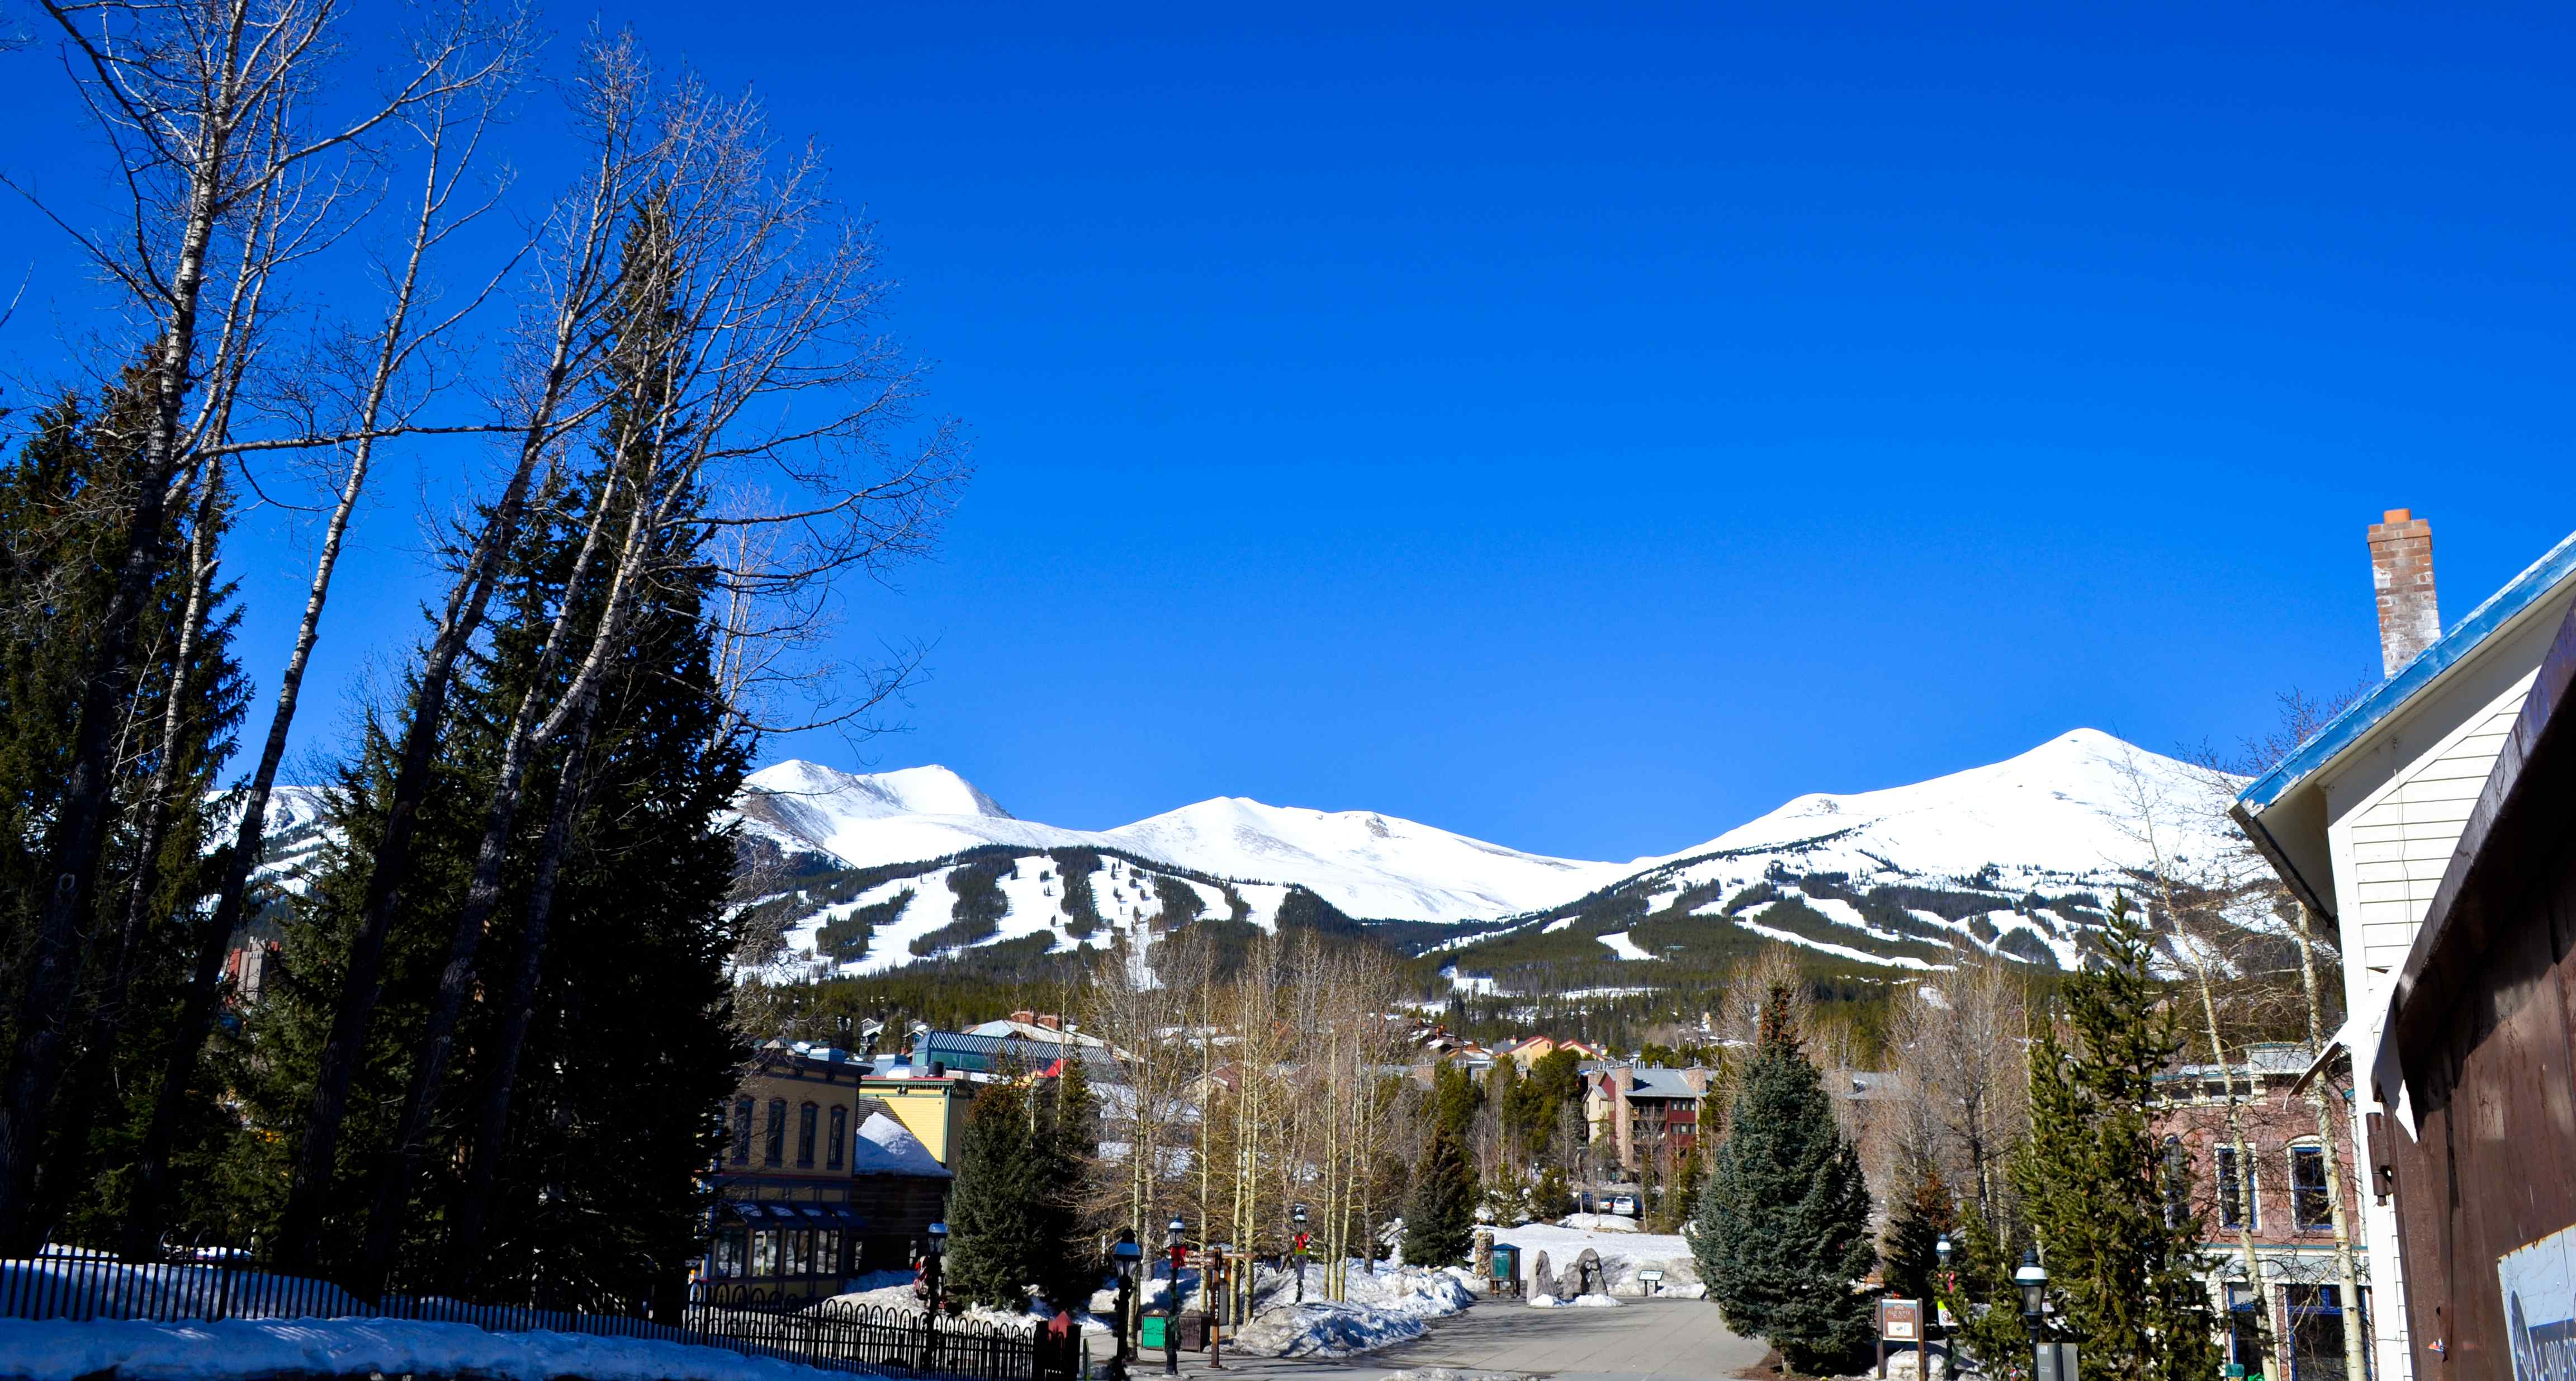 spring time in Breck